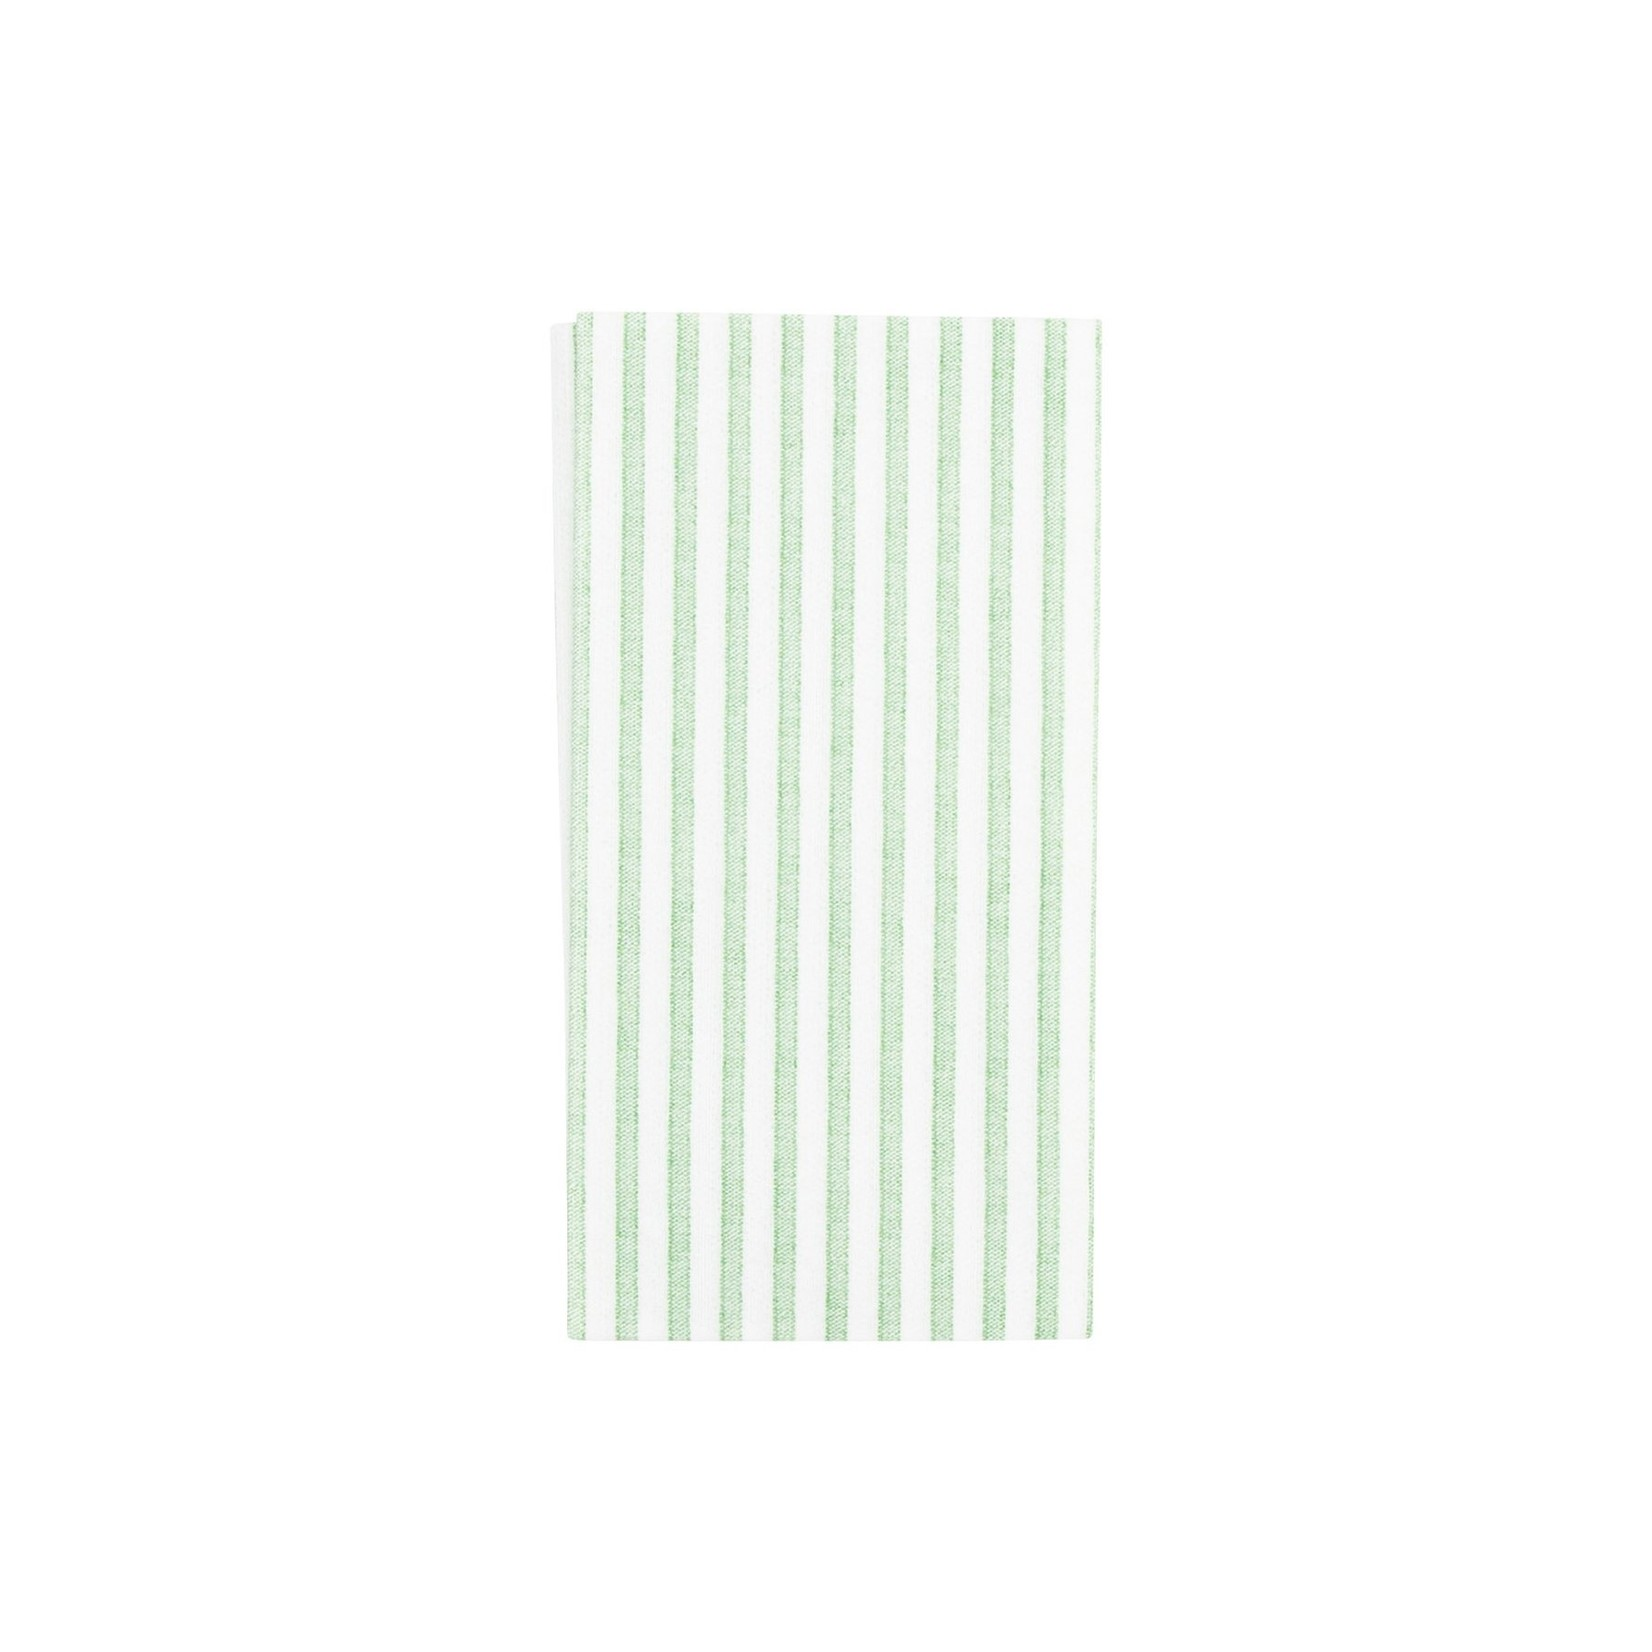 Vietri Papersoft Napkins Guest Towel (pack of 20)